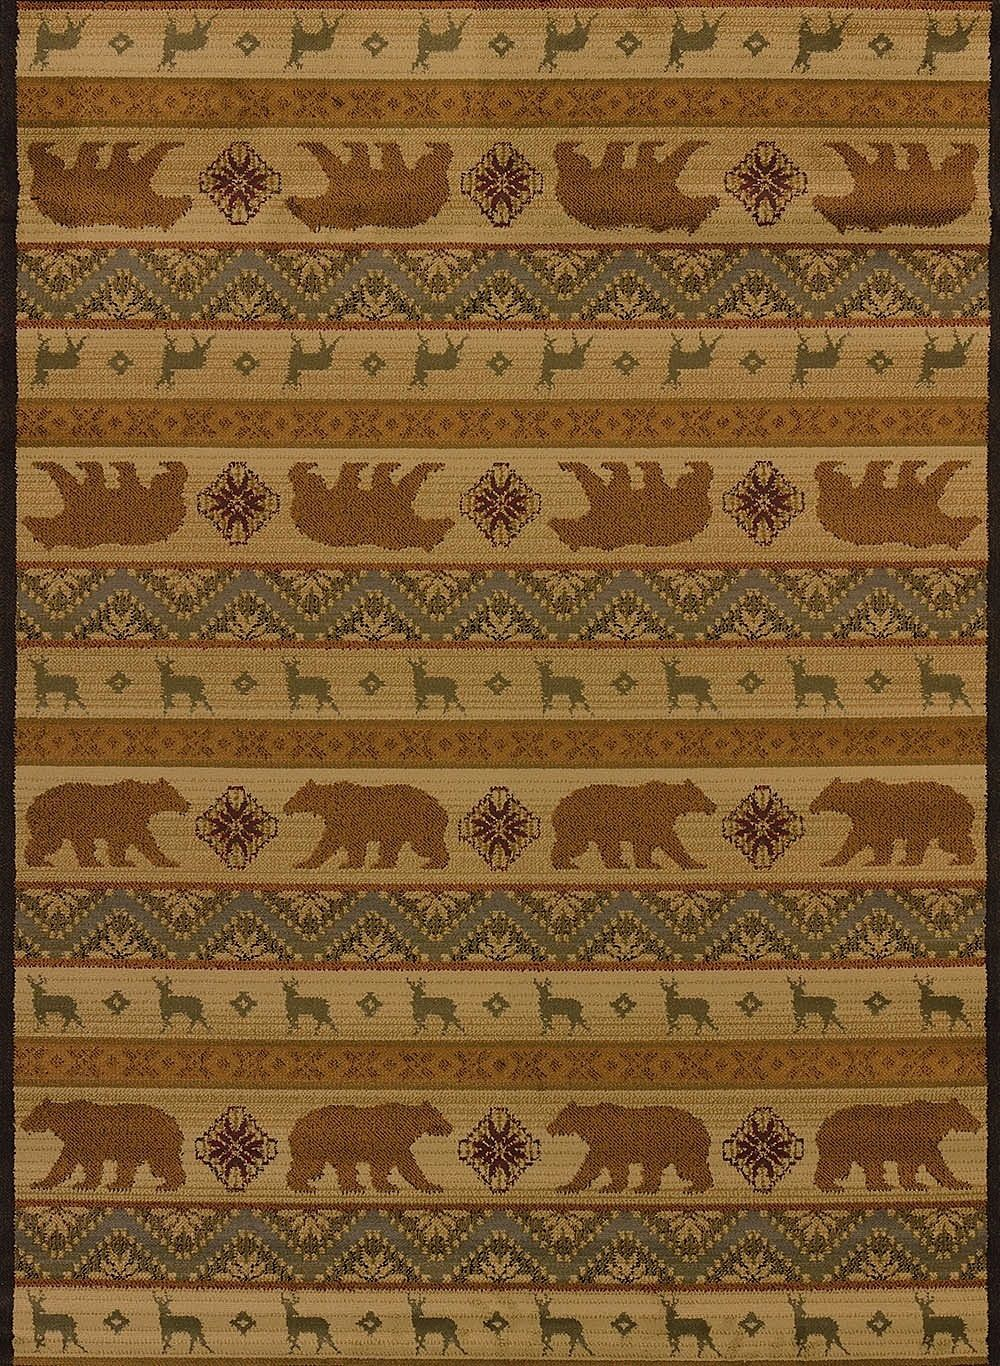 united weavers affinity nordic bear southwestern/lodge area rug collection